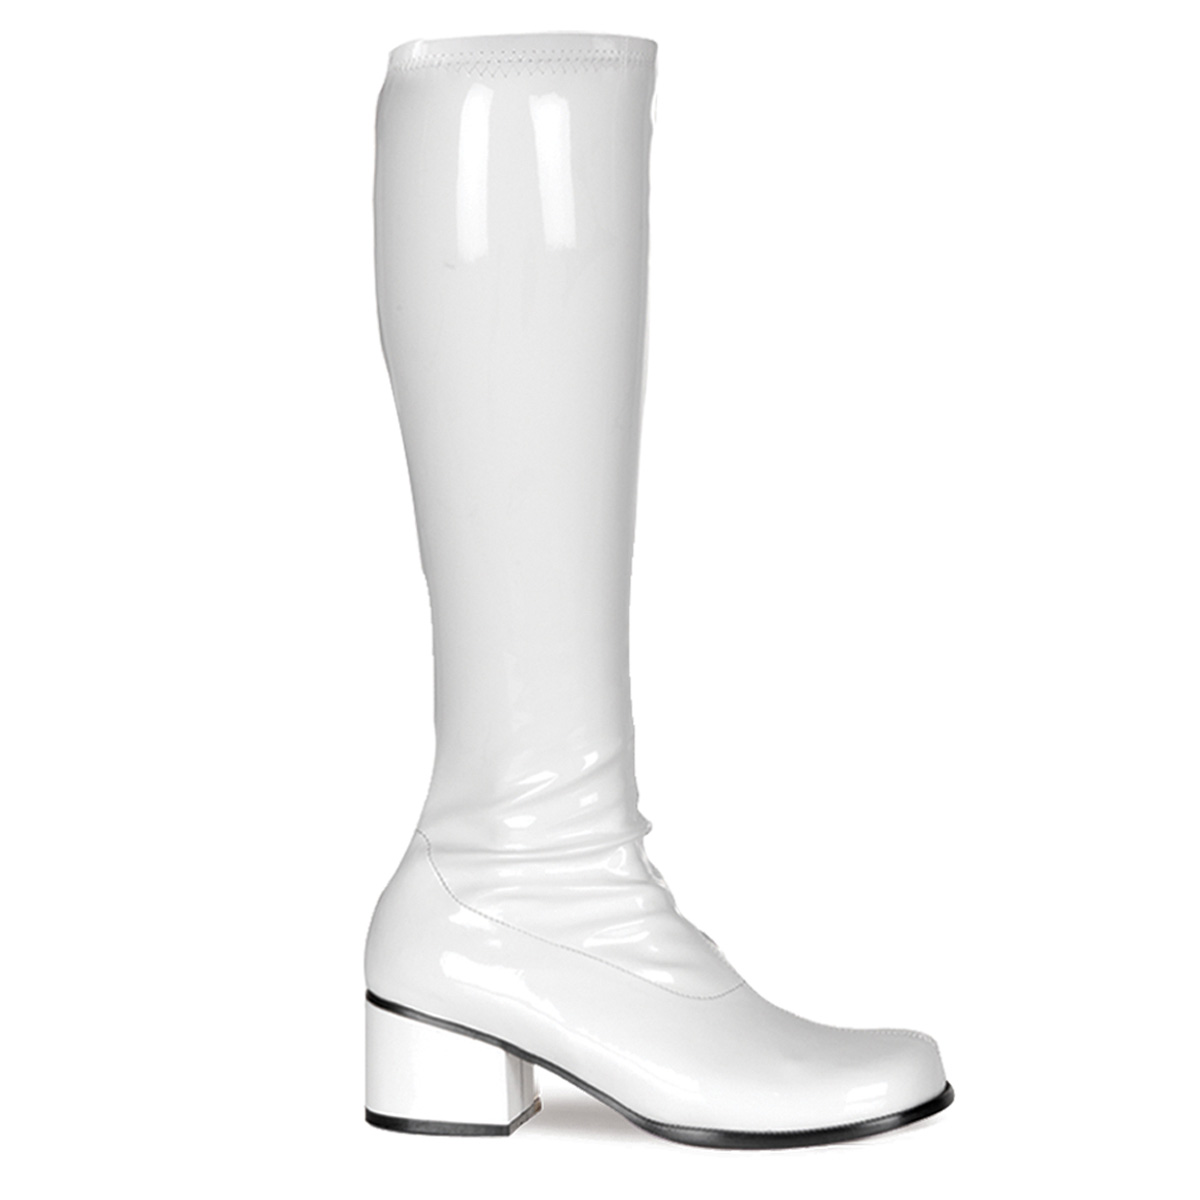 Pleaser Retro-300 Womens Retro 70's Gogo Style Halloween Boots at Sears.com